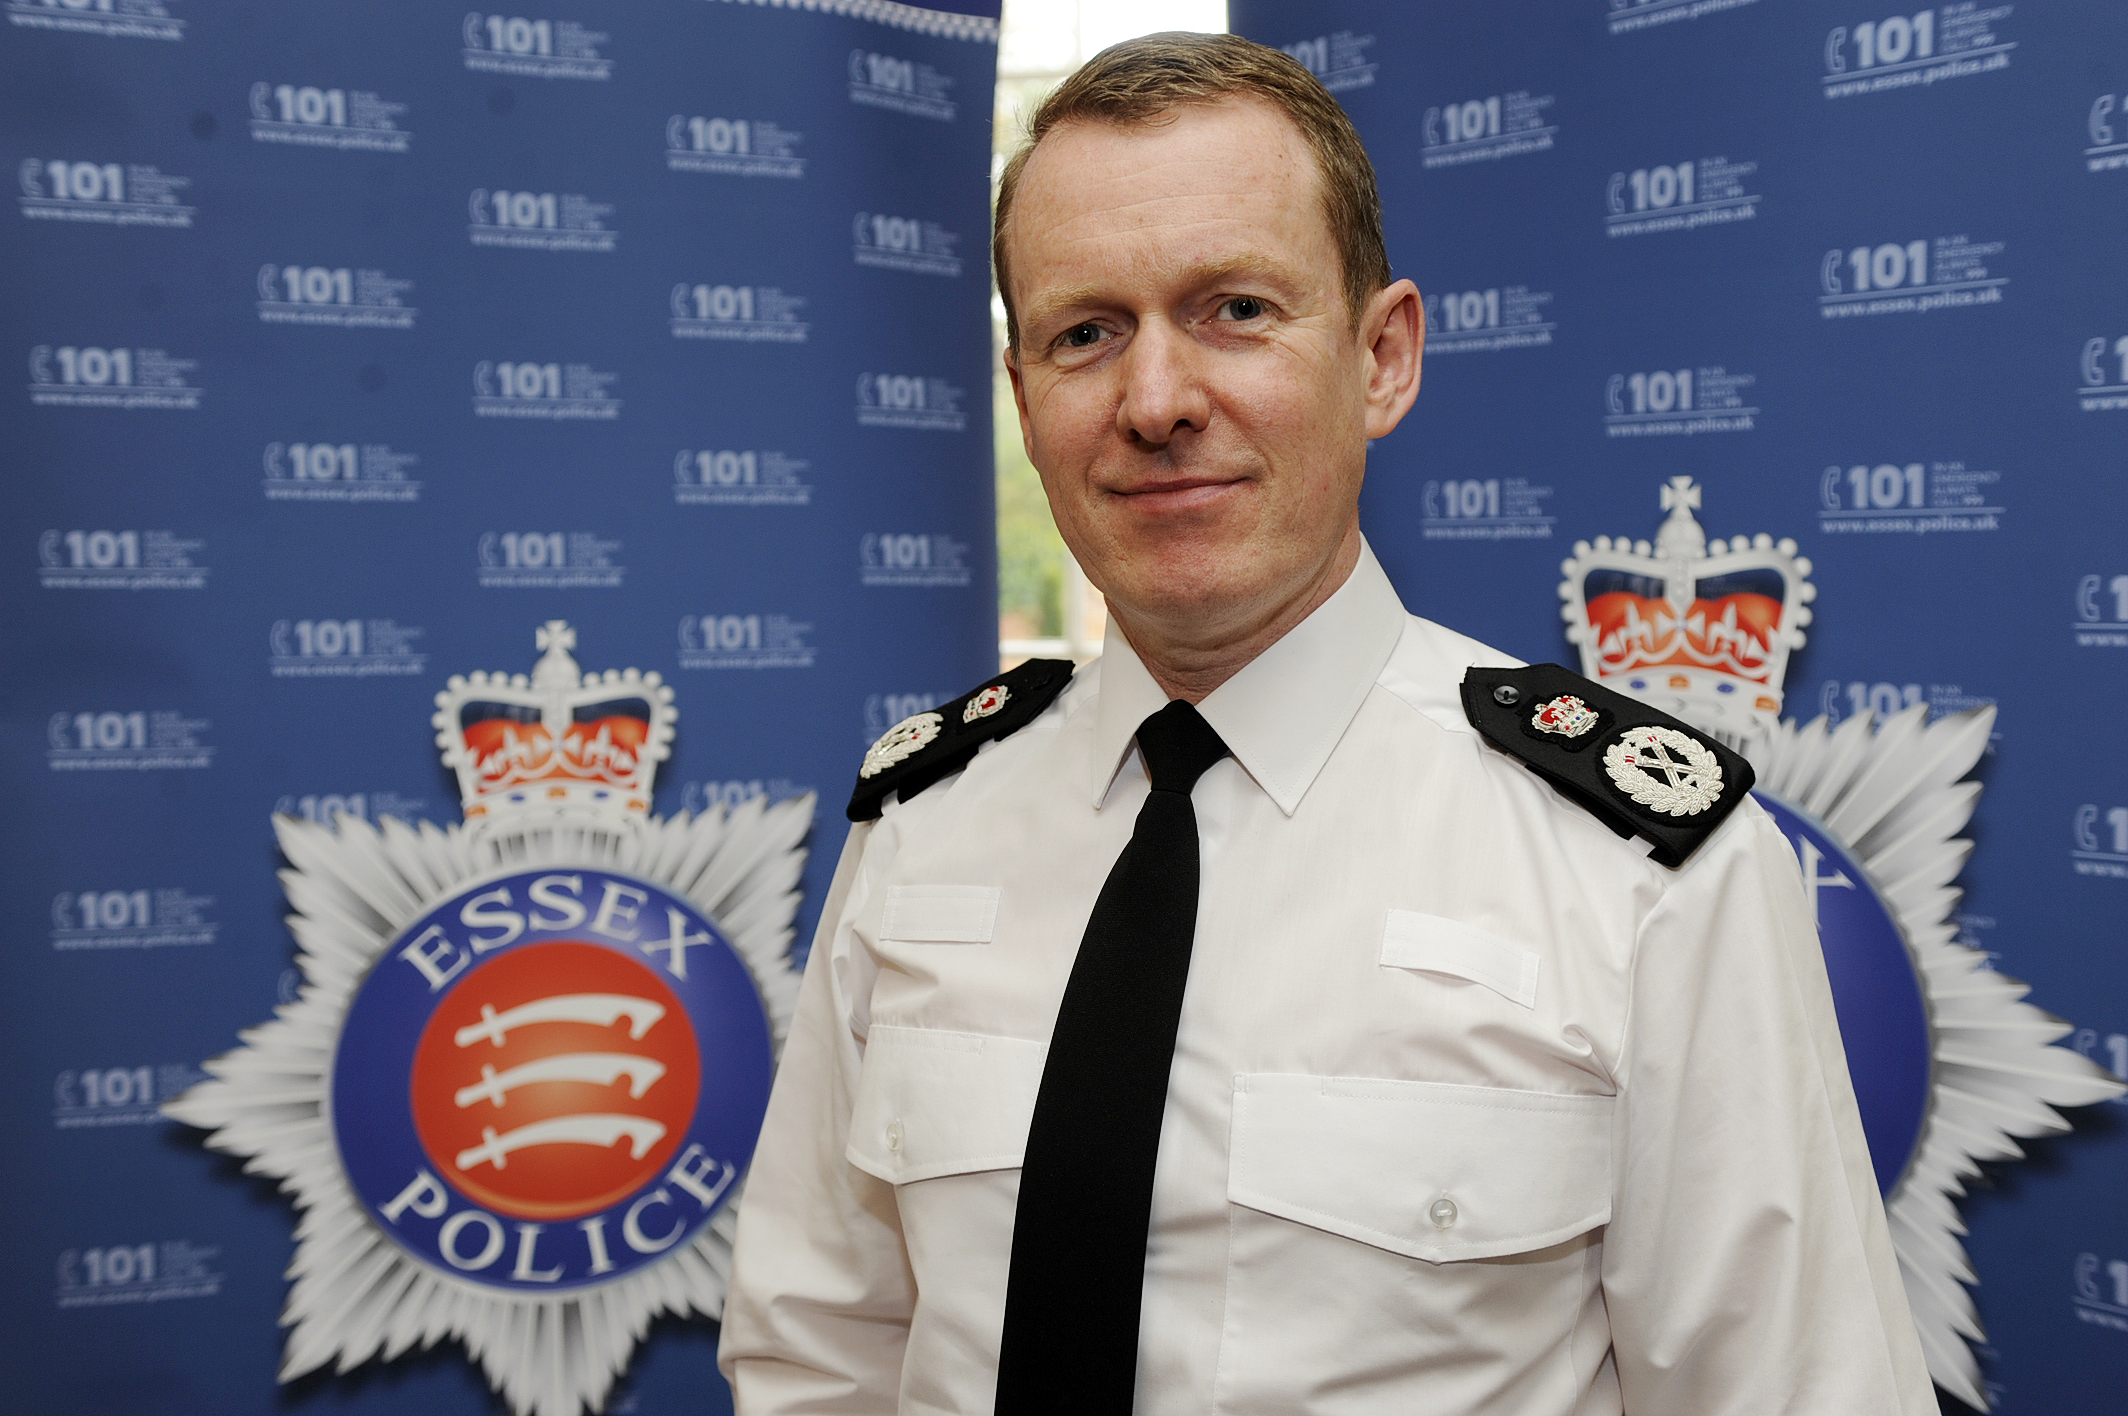 Chief constable Stephen Kavanagh has announced extra local policing officers